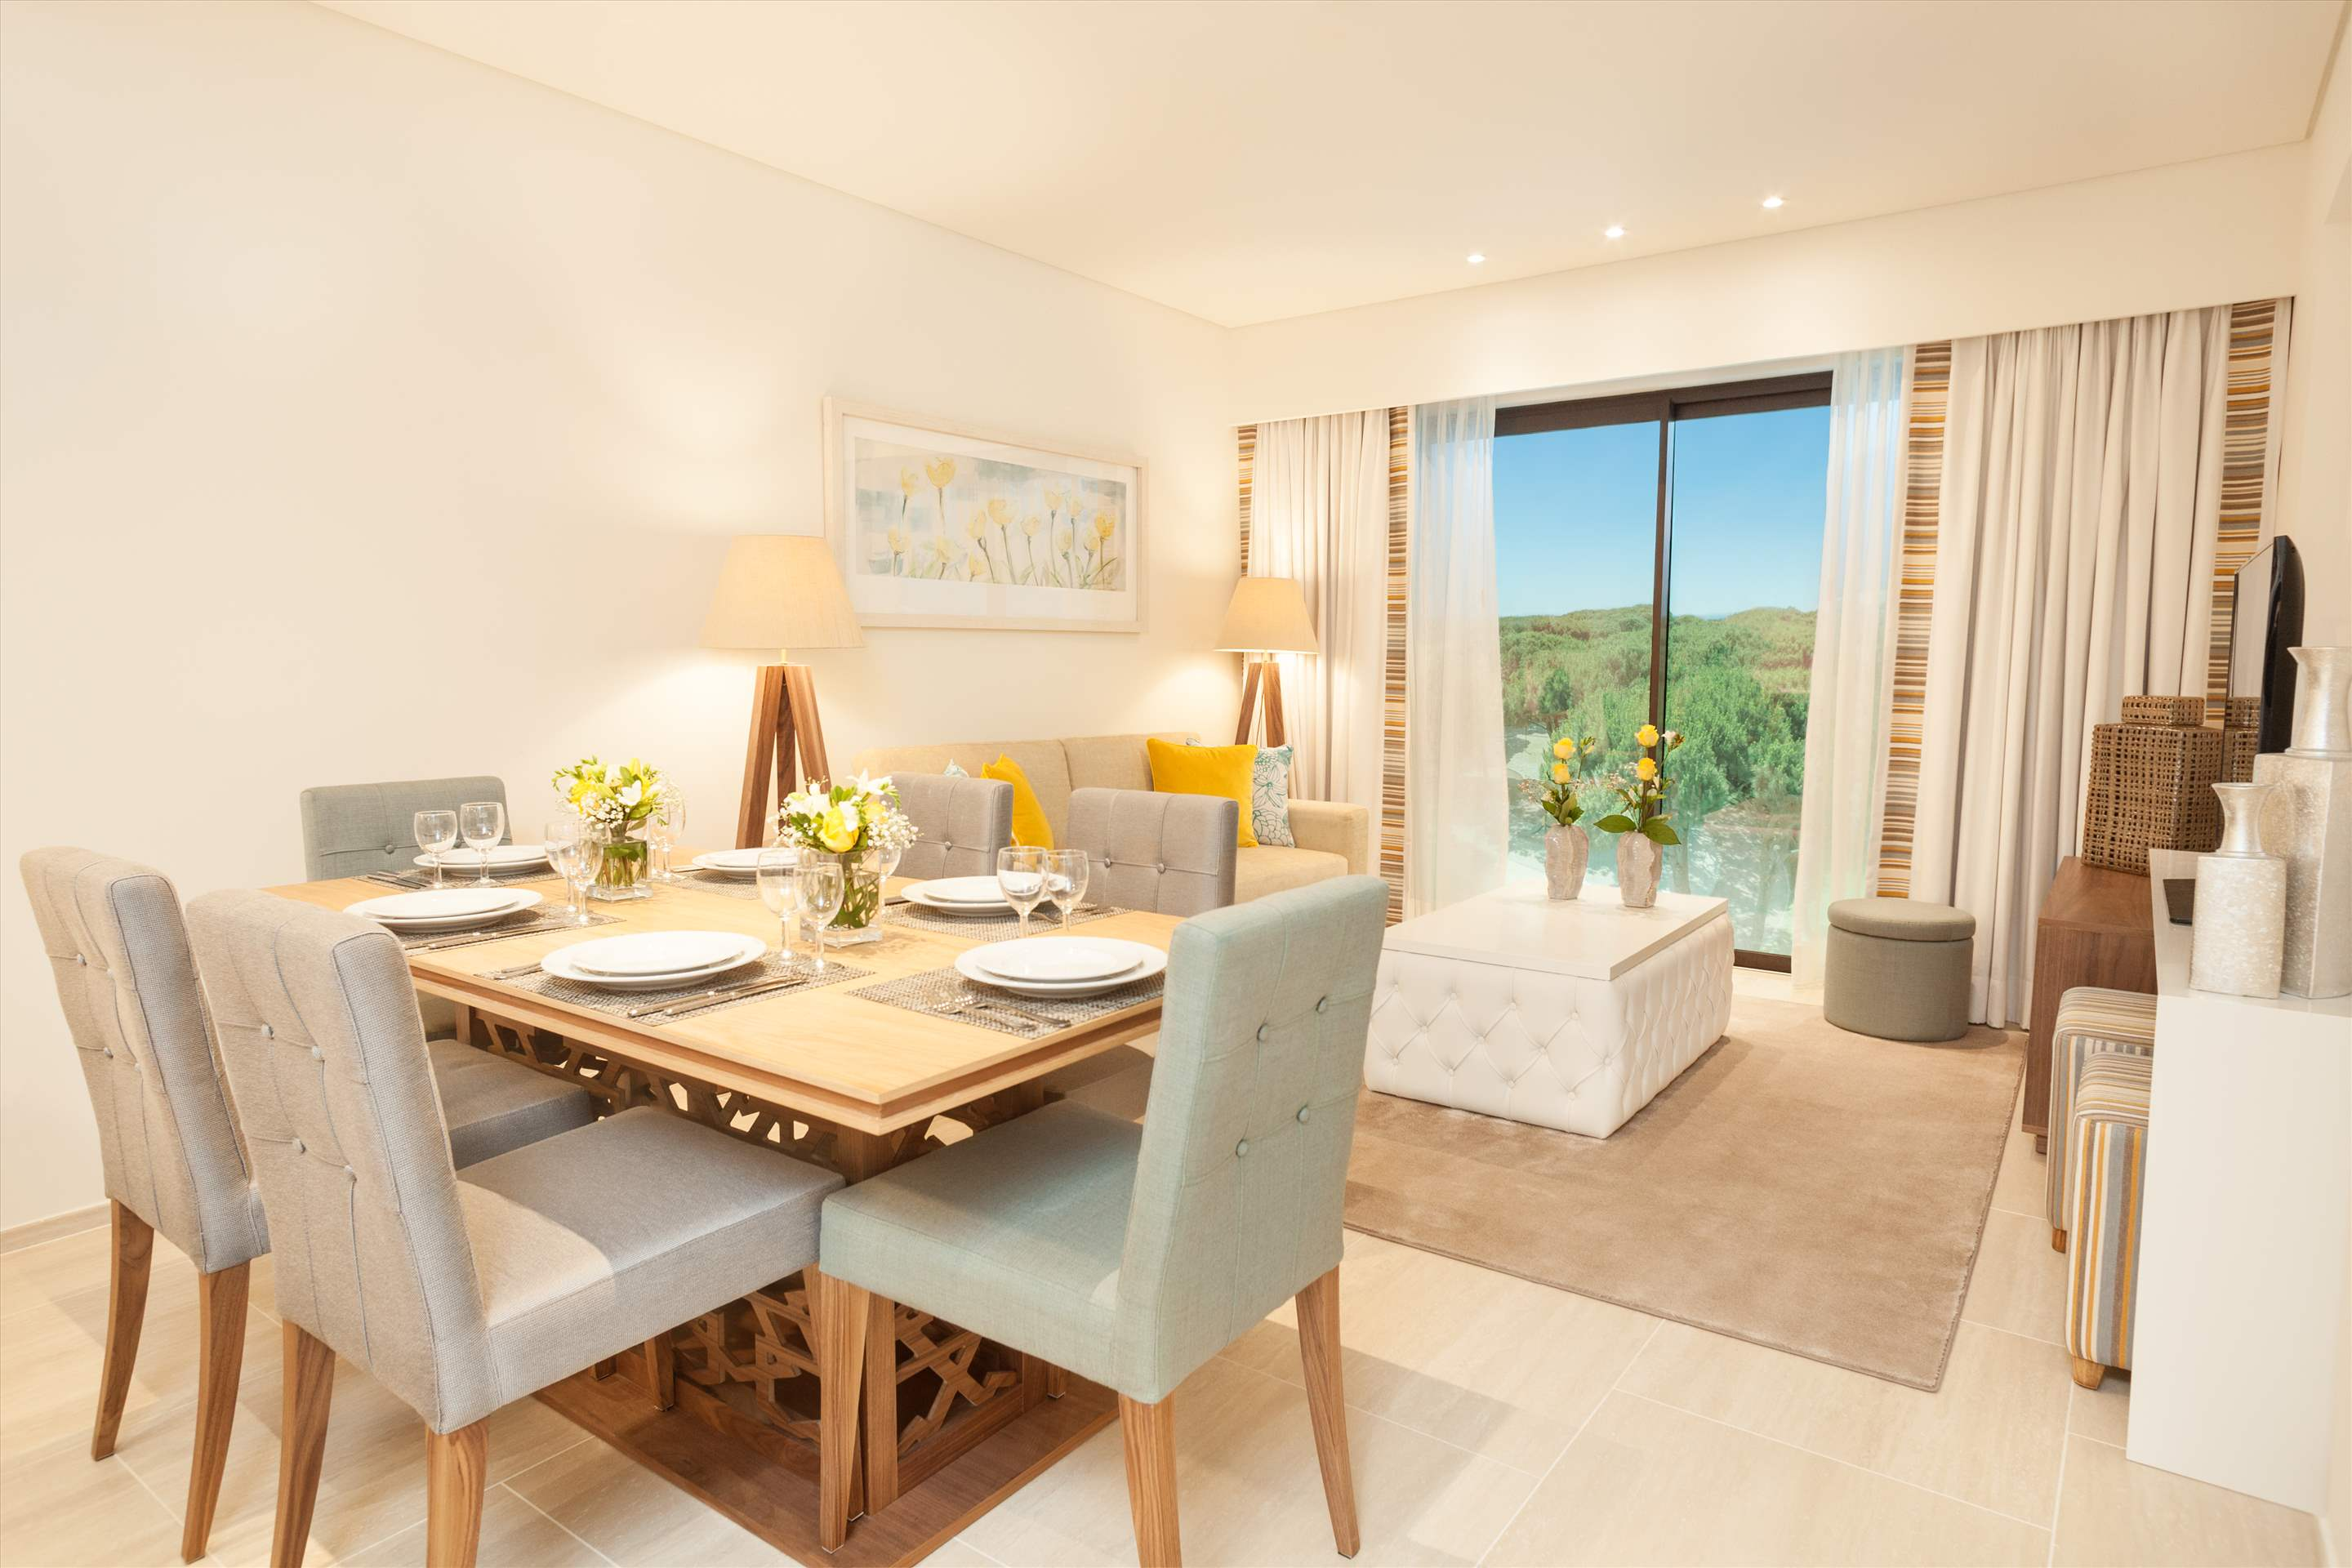 Pine Cliffs Gardens, One Bedroom Suite, S/C Basis, 1 bedroom apartment in Pine Cliffs Resort, Algarve Photo #11